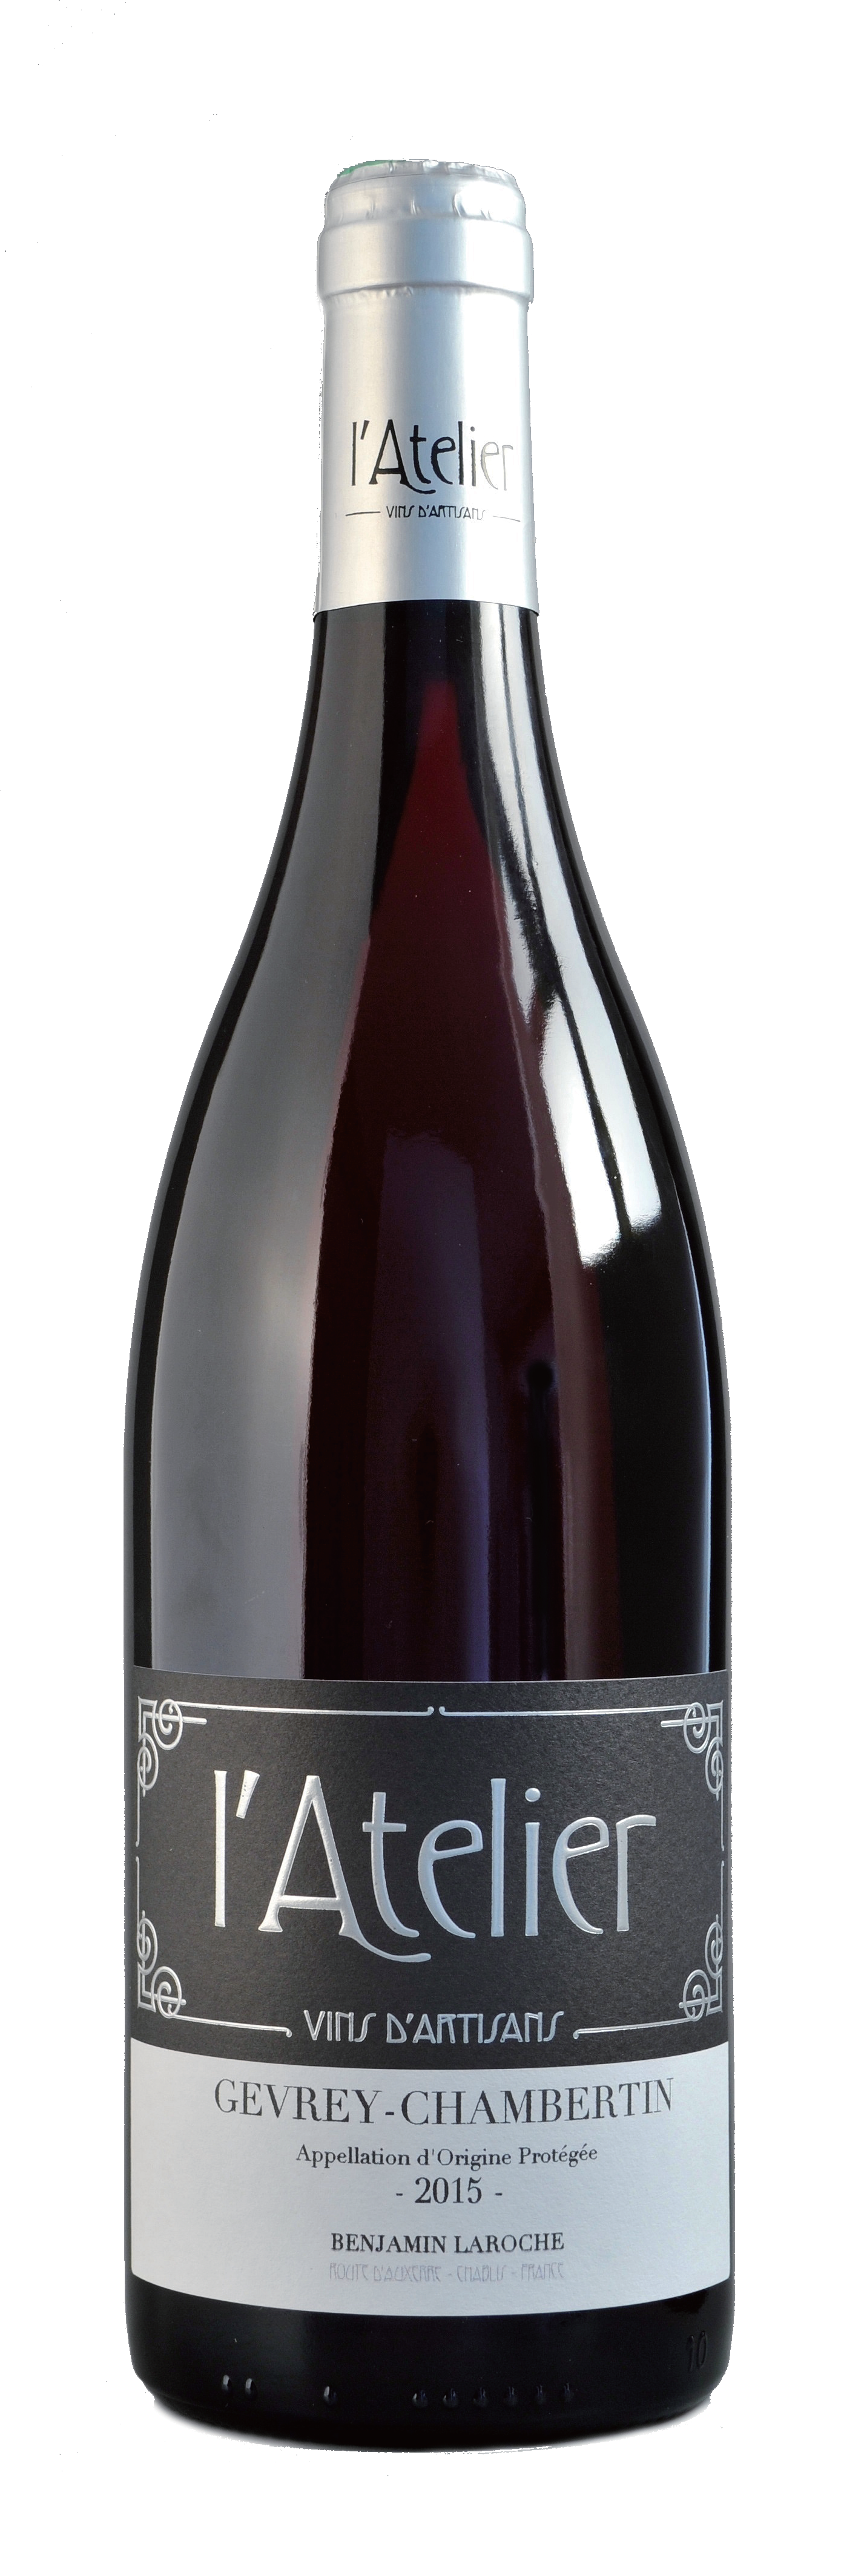 AOP GEVREY CHAMBERTIN 2015   - Région Burgundy 布根地100% Pinot noirPrice 价格 2.800NT$Tasting note 品飲Strawberry, blackberry, violet and rose as spontaneous aromas. Its maturity oofers a nose with liquorice, leather and fur hints. Full bodied, powerfull but complex.草莓,黑莓,紫羅蘭和玫瑰等芳香香氣。熟成后伴隨著甘草,皮革和毛皮等